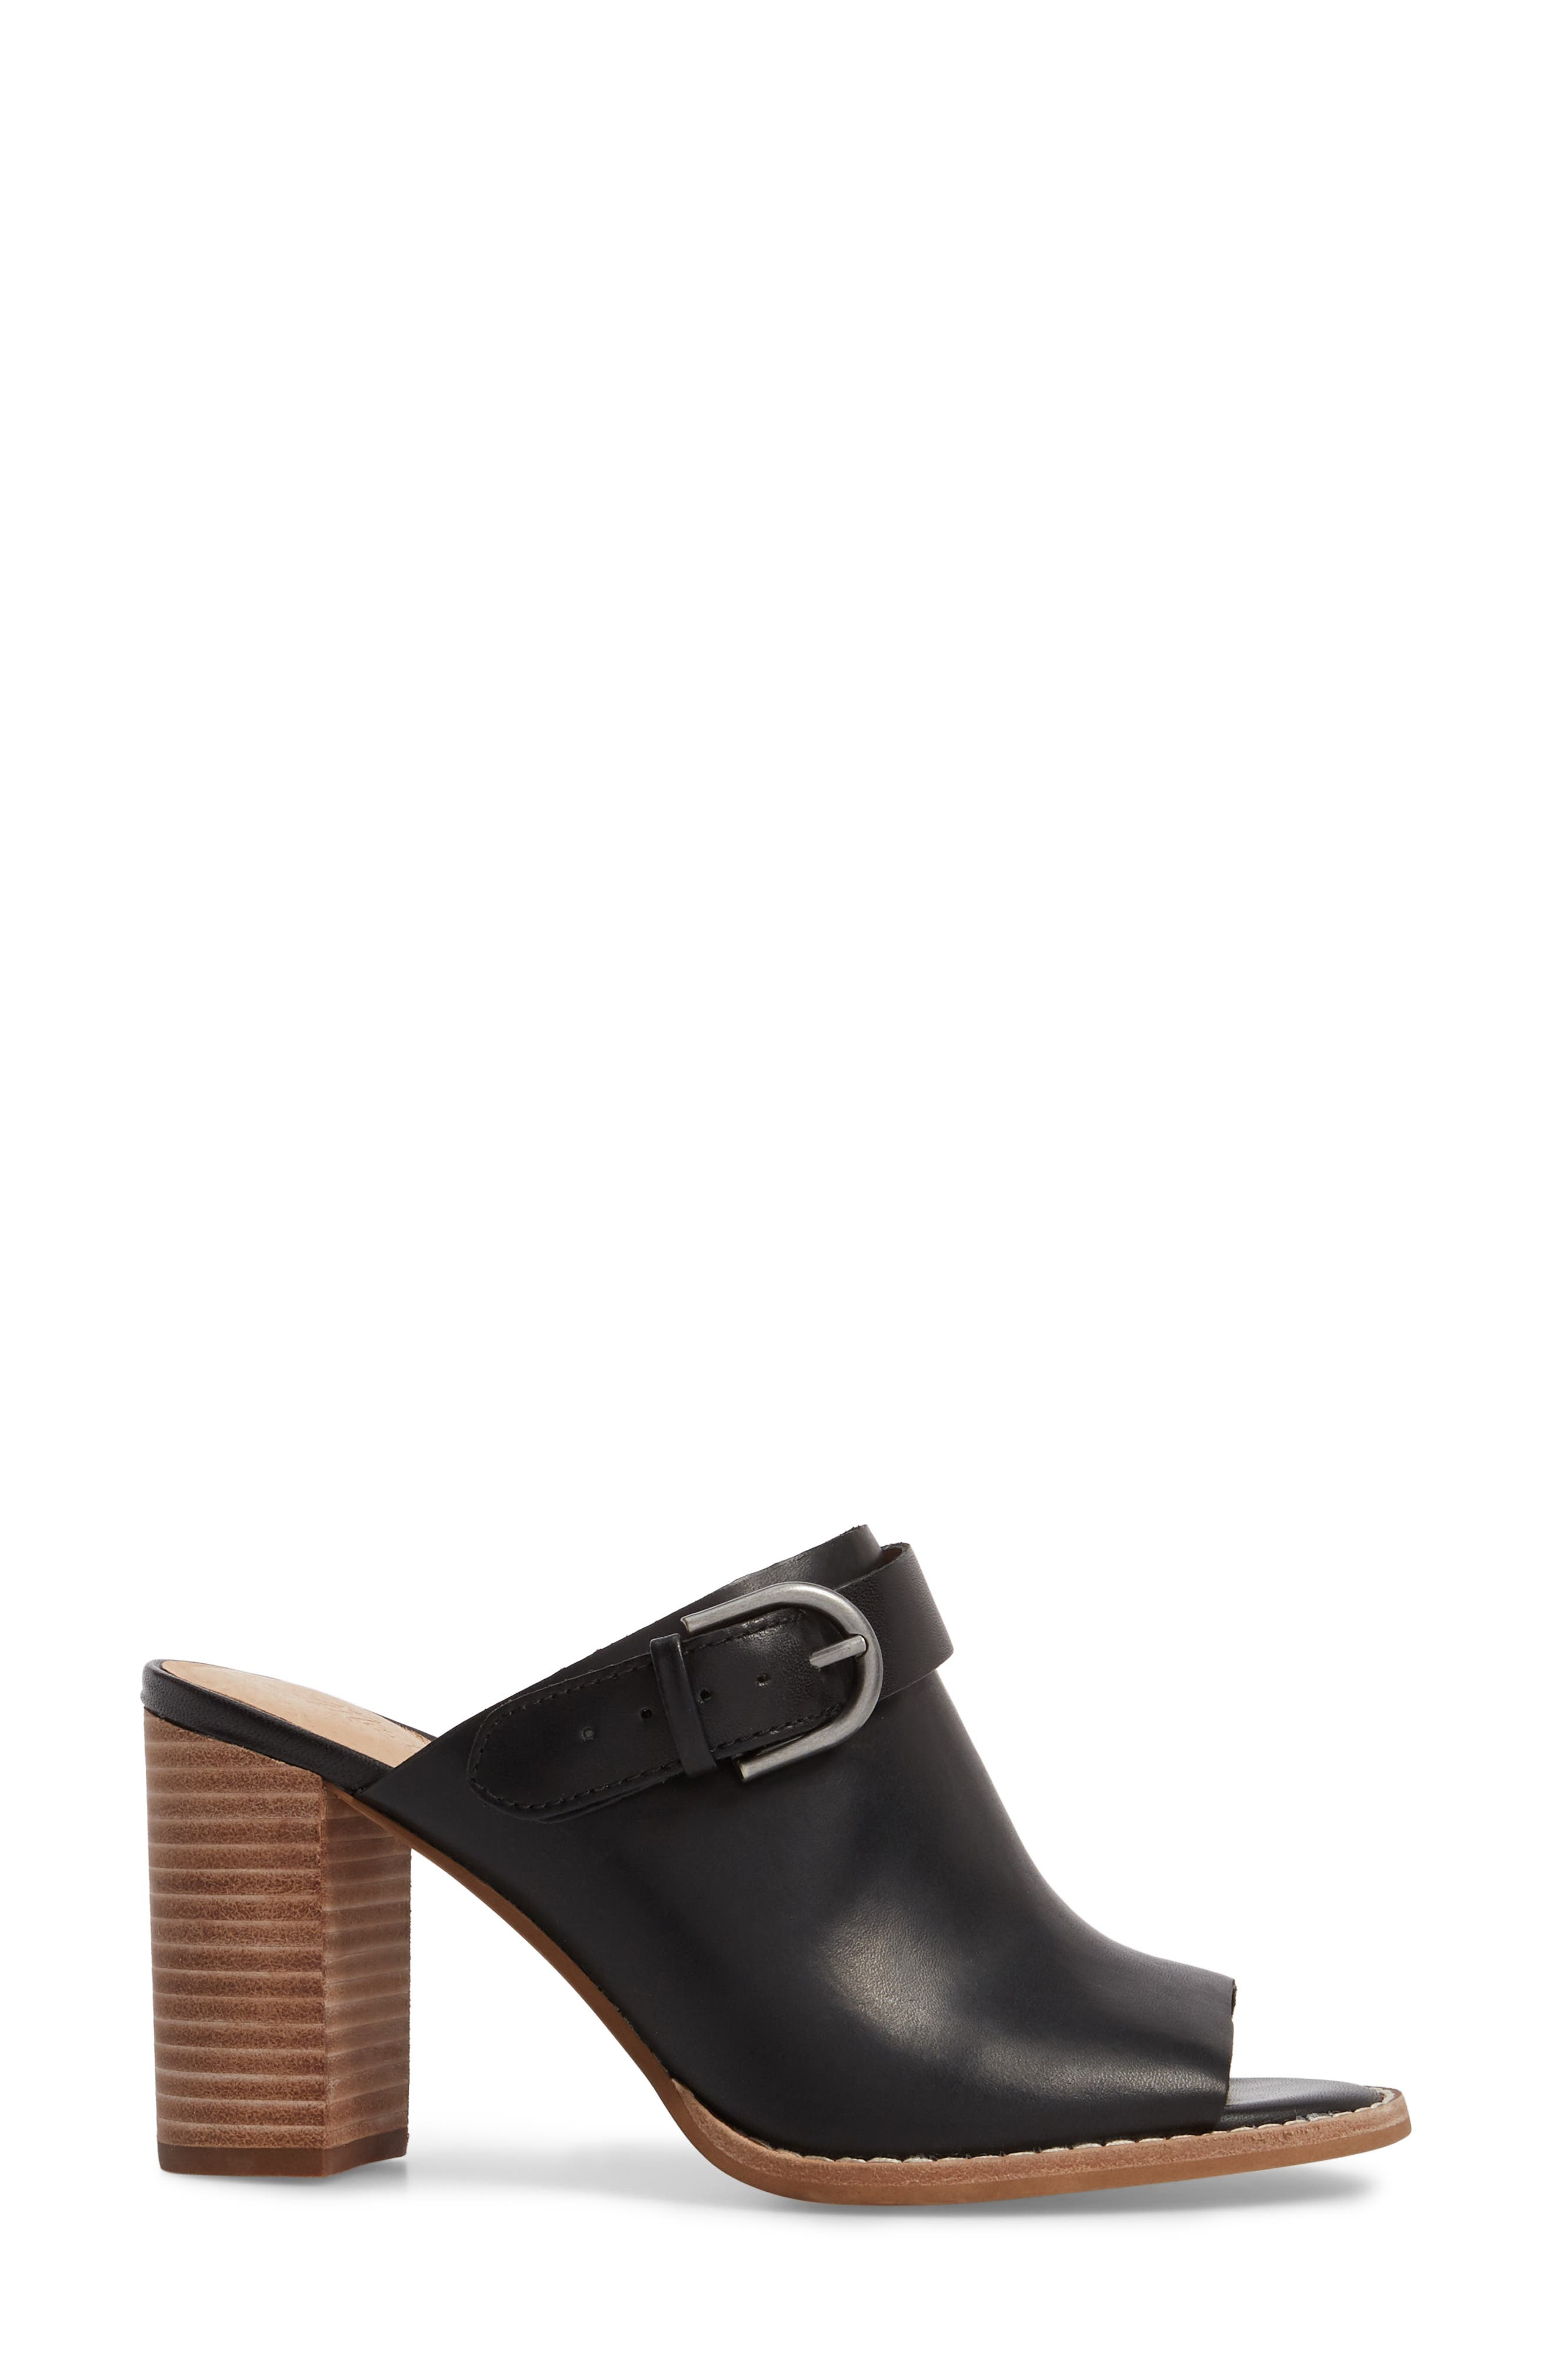 MADEWELL, Riley Slingback Mule, Alternate thumbnail 3, color, TRUE BLACK LEATHER